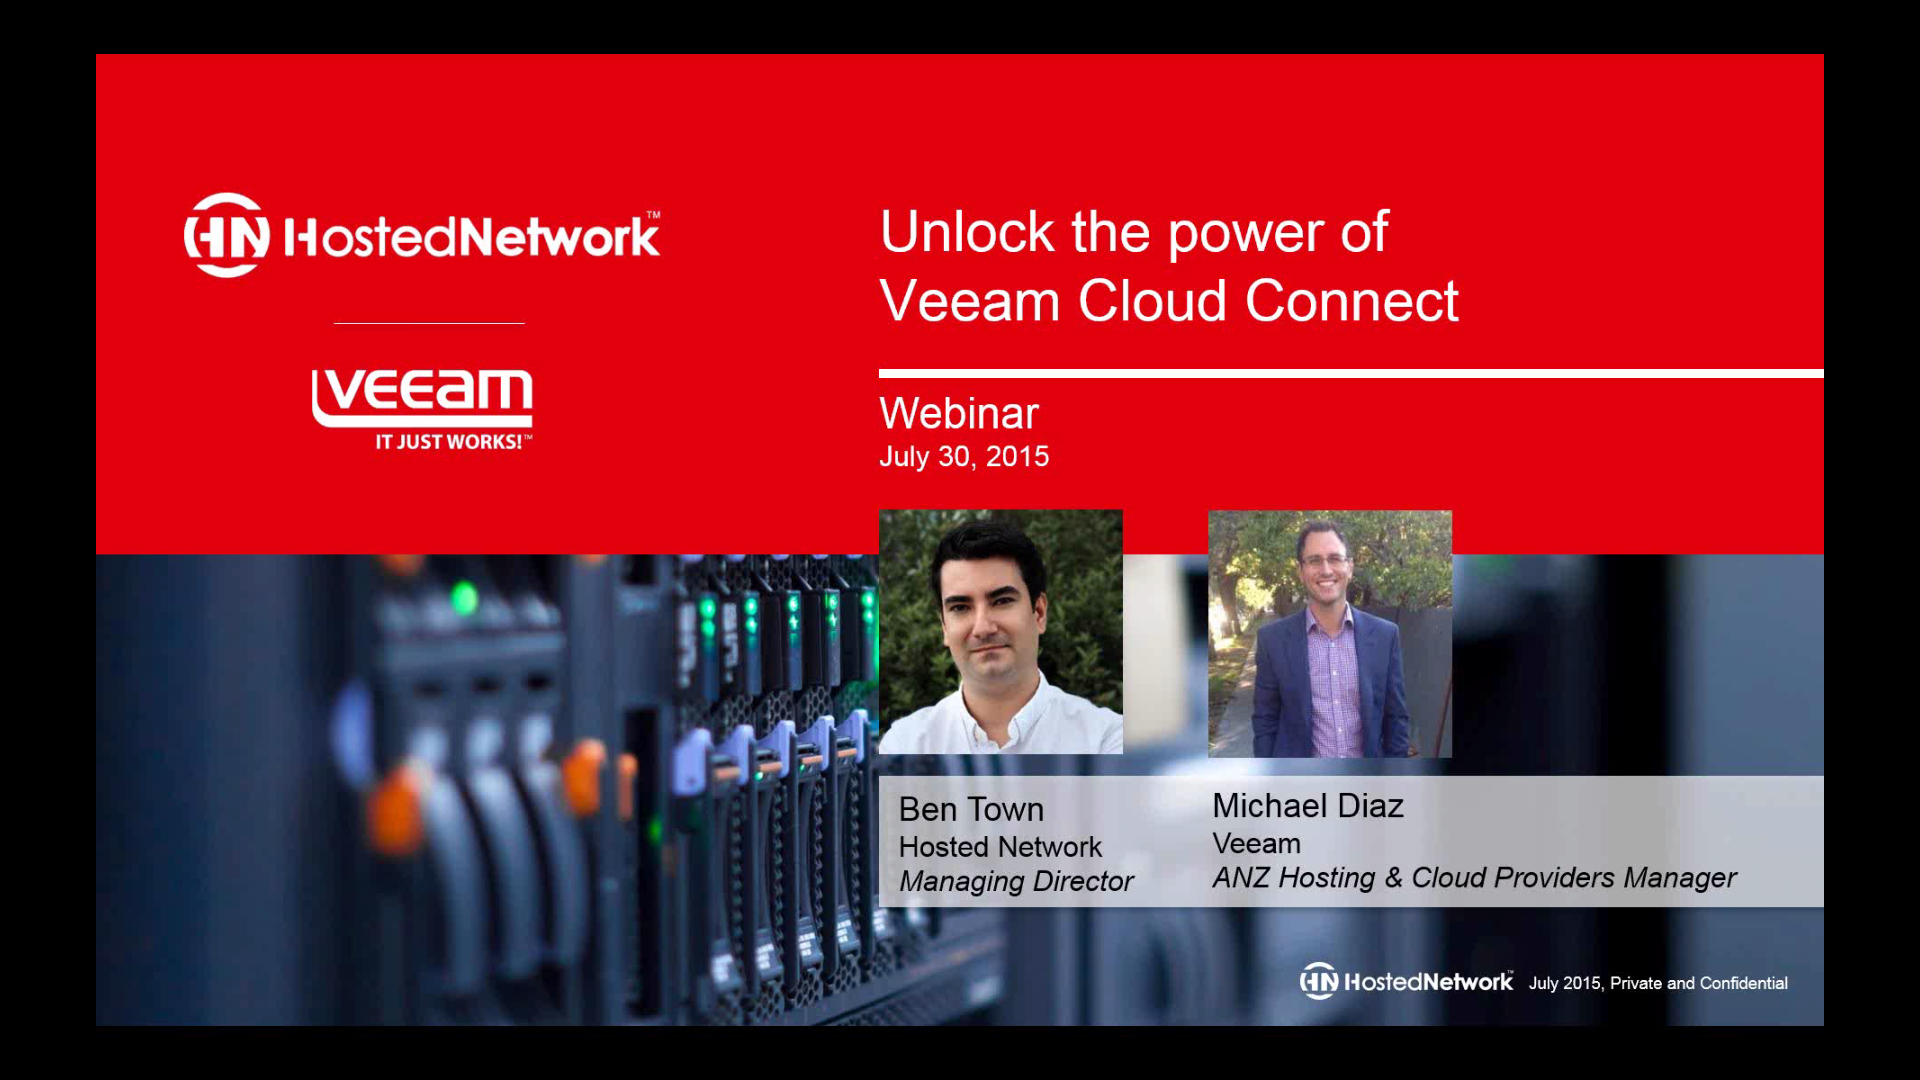 Unlock the power of Veeam Cloud Connect